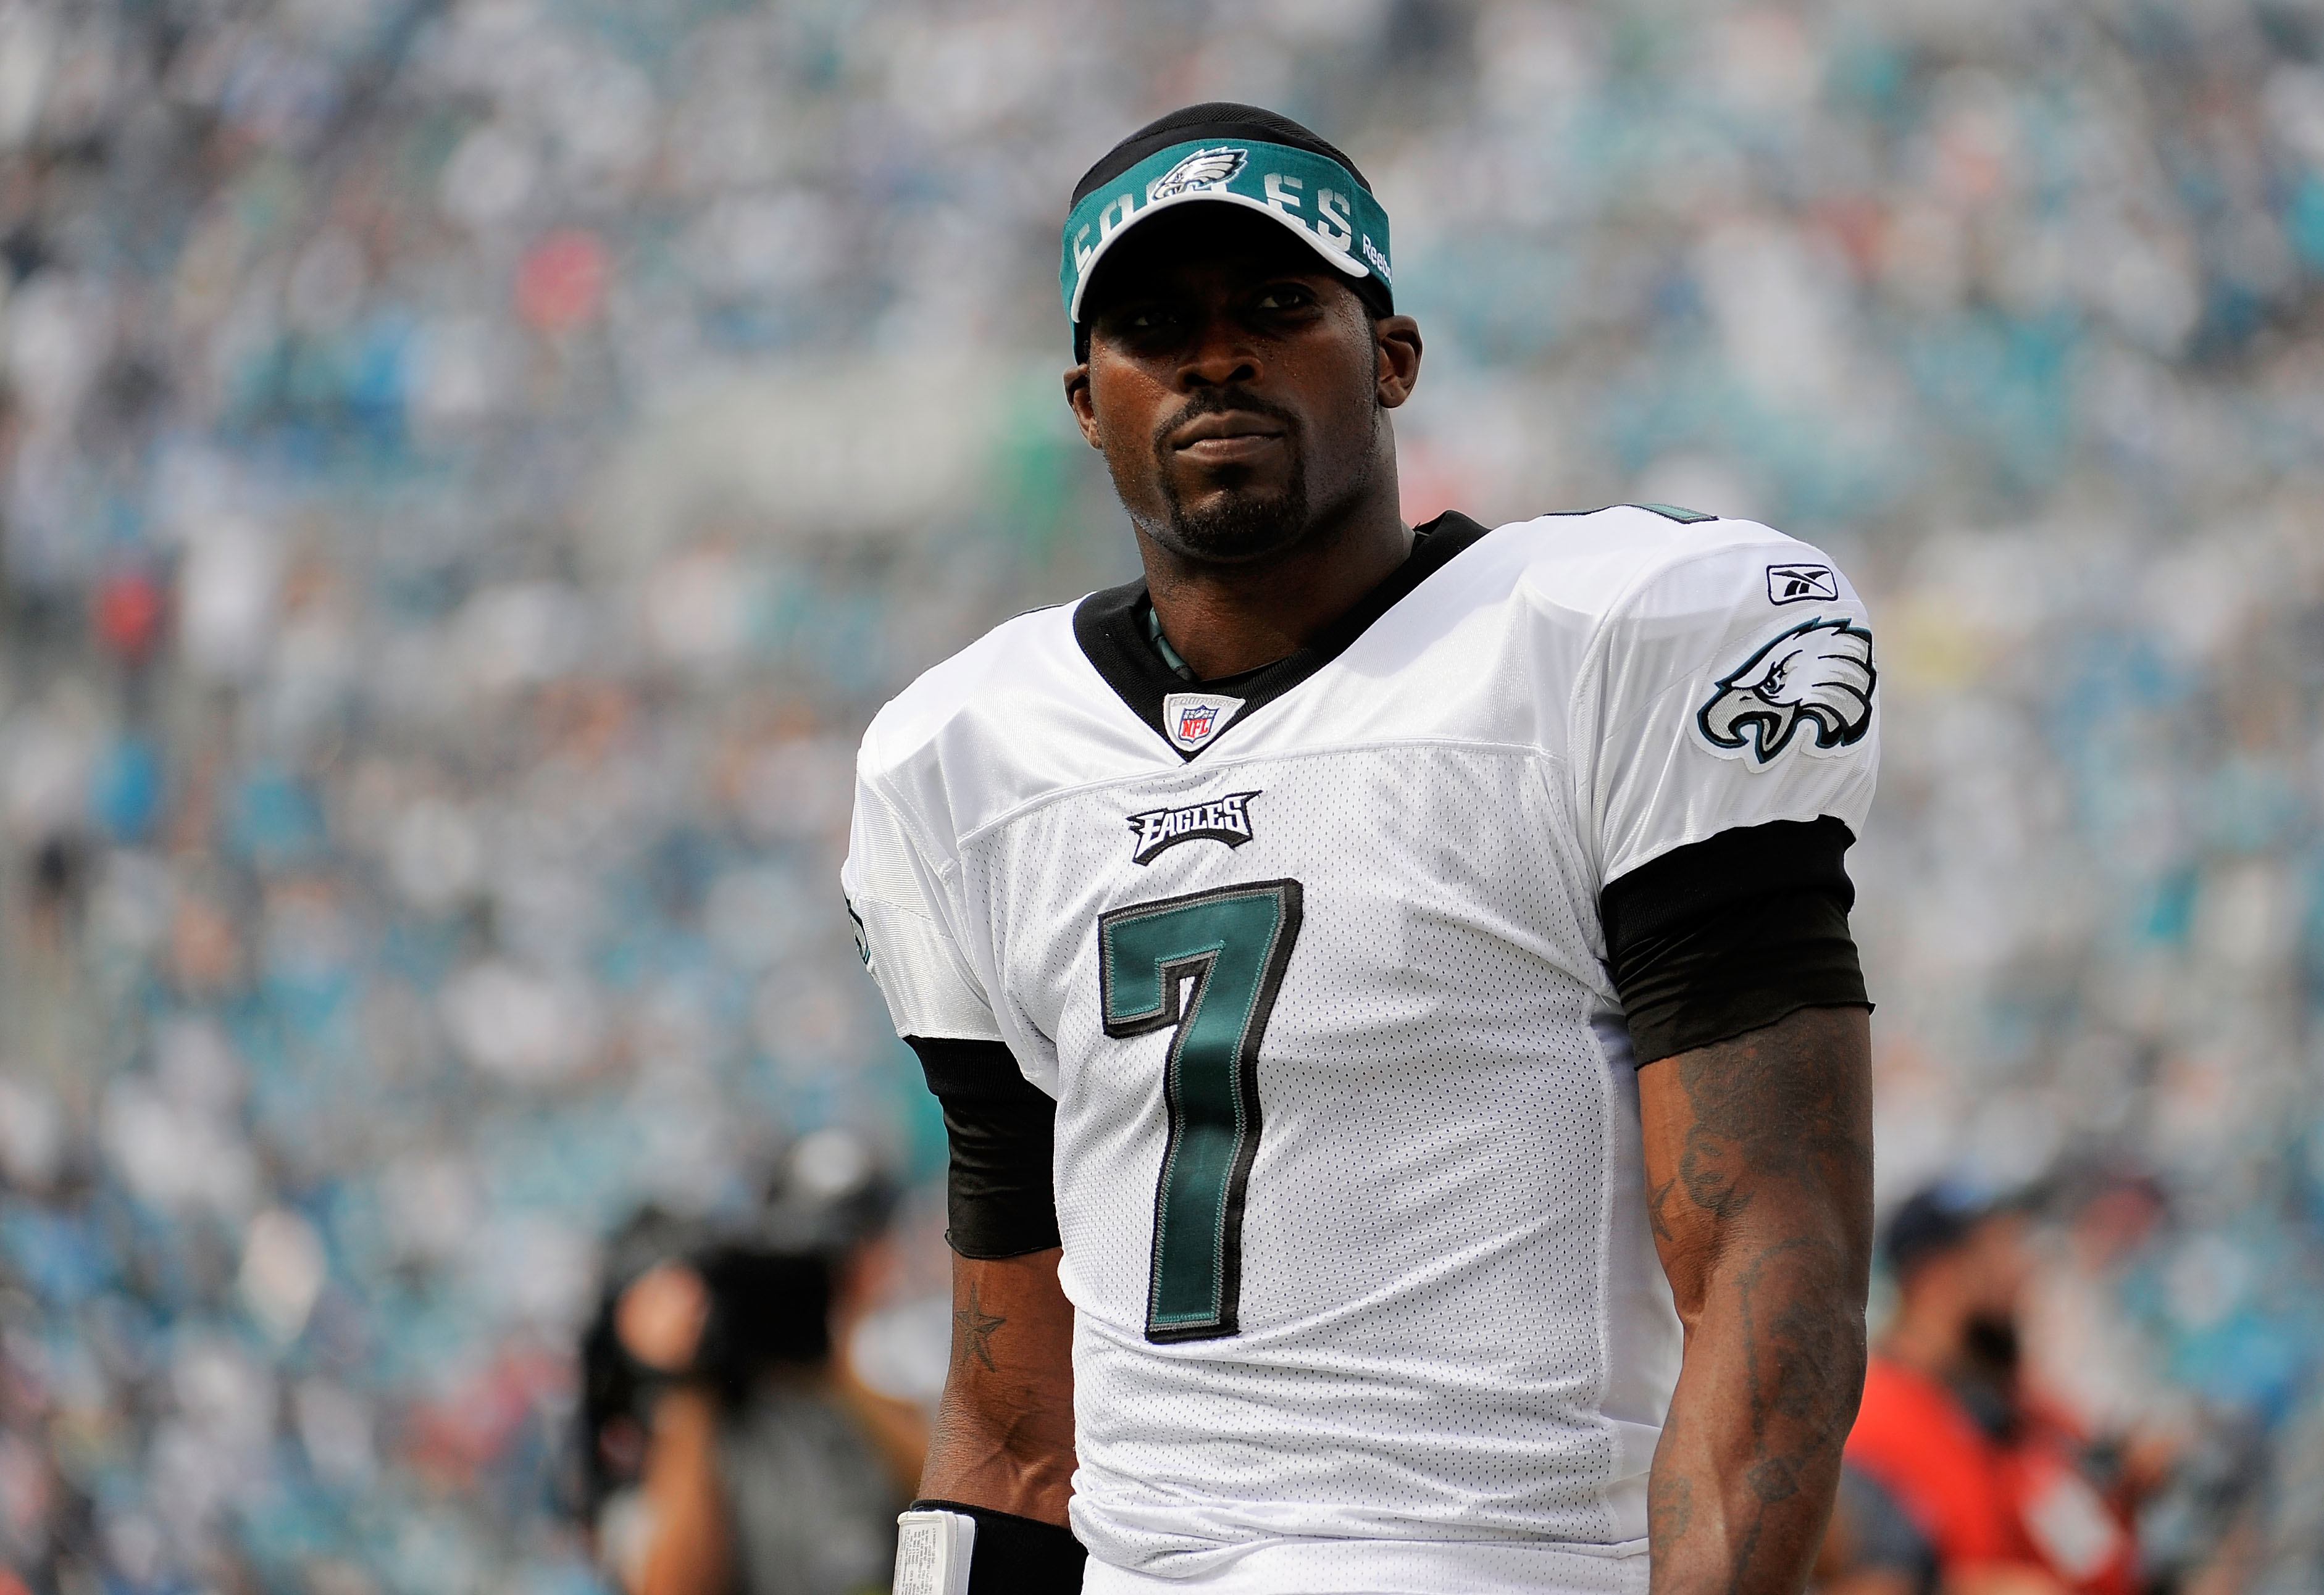 JACKSONVILLE, FL - SEPTEMBER 26:  Quarterback Michael Vick #7 of the Philadelphia Eagles looks toward fans chanting his name before taking on the Jacksonville Jaguars at EverBank Field on September 26, 2010 in Jacksonville, Florida.  (Photo by Doug Benc/G